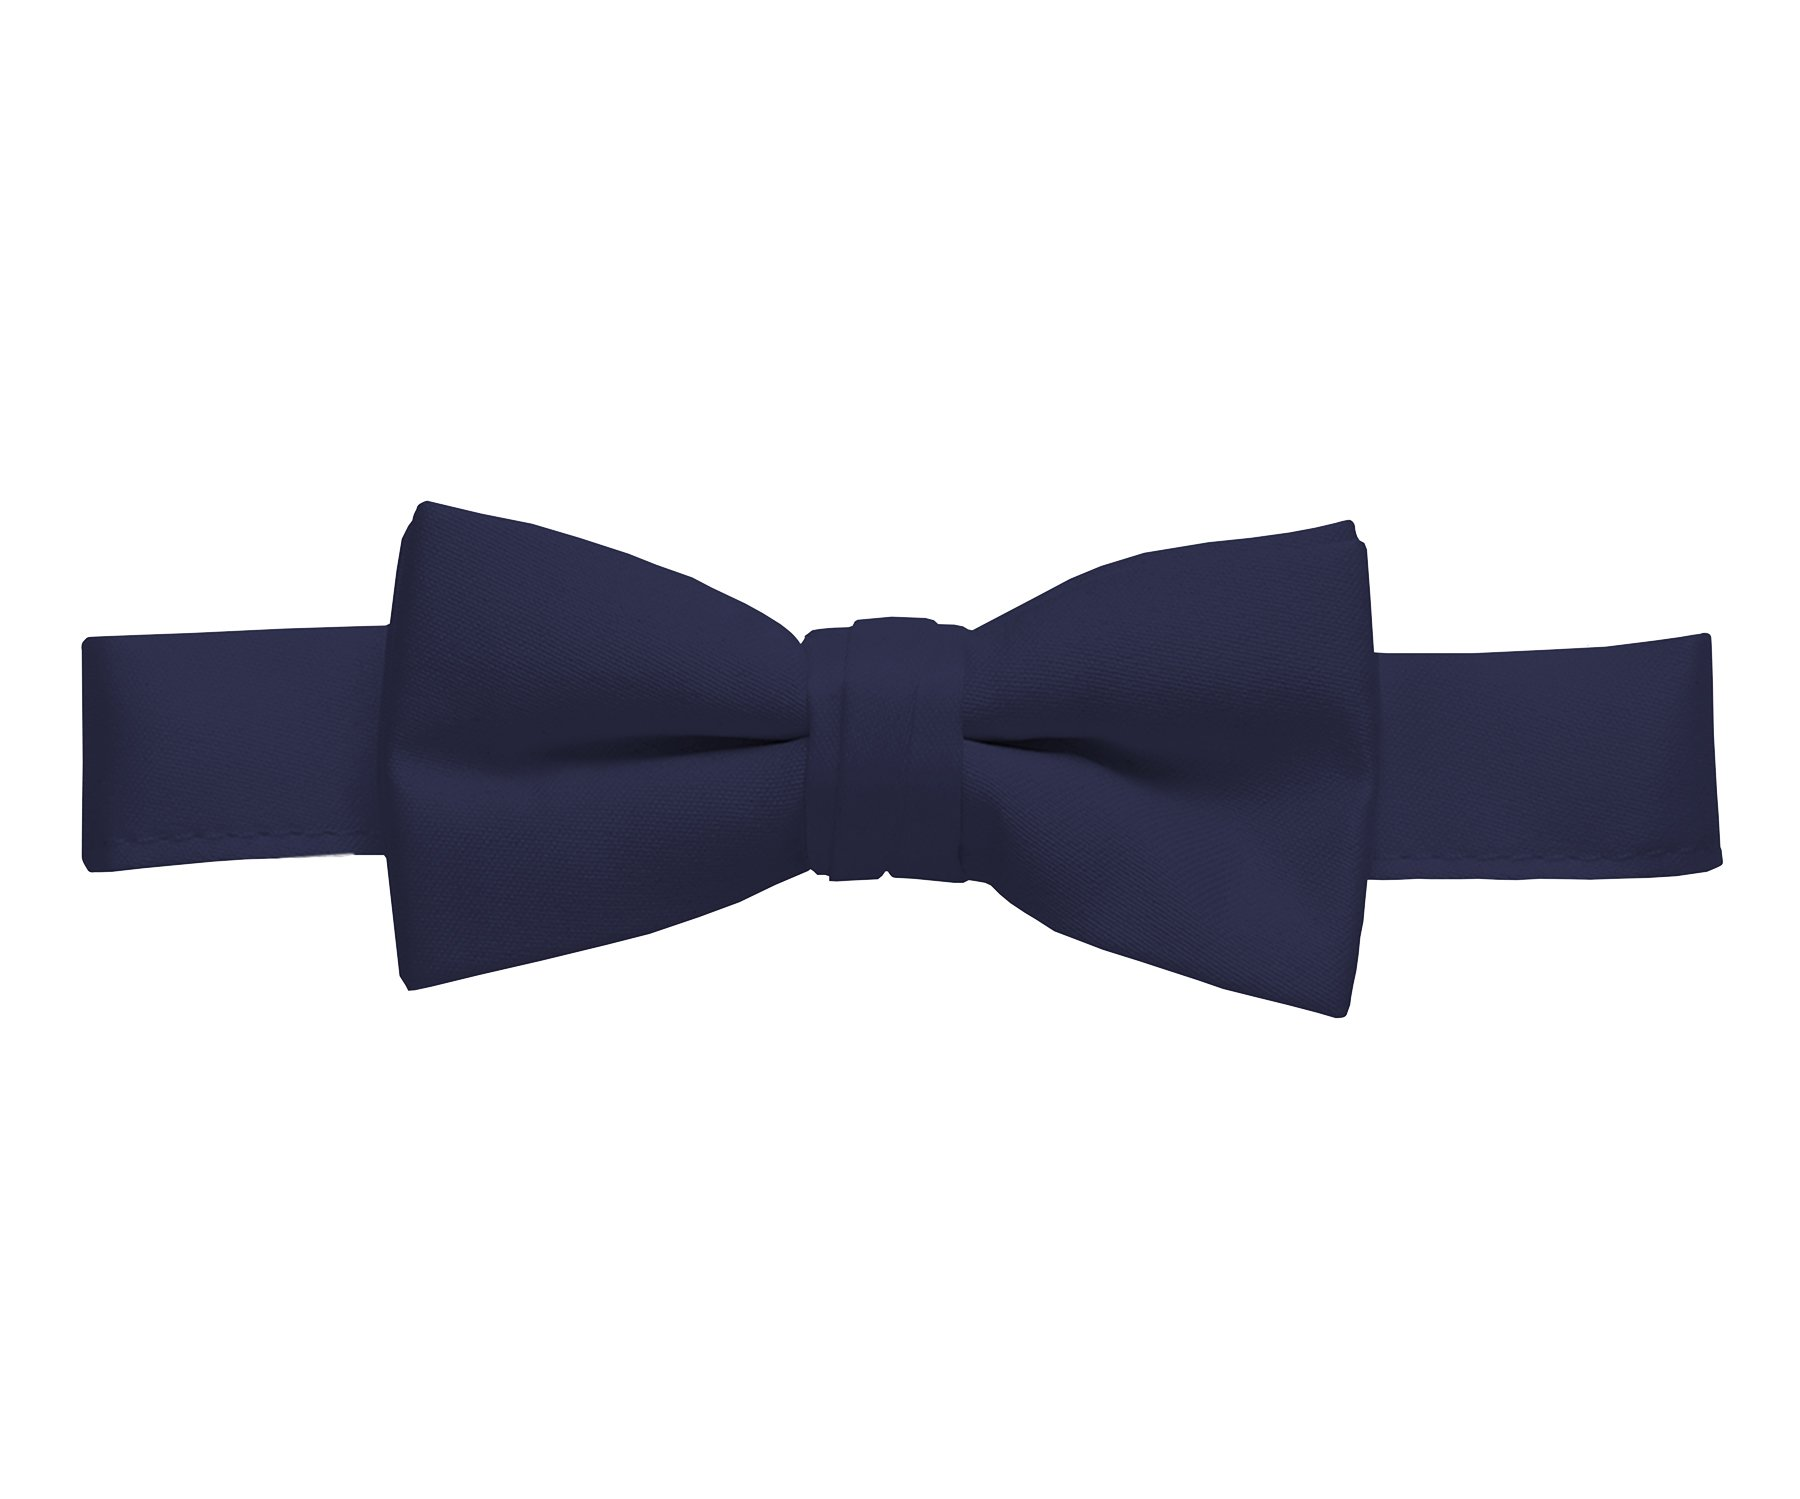 Hold'Em Bow Tie For Mens Boys and Baby Satin look Solid Color Adjustable Pre-tied Made in USA - Kids Navy Blue